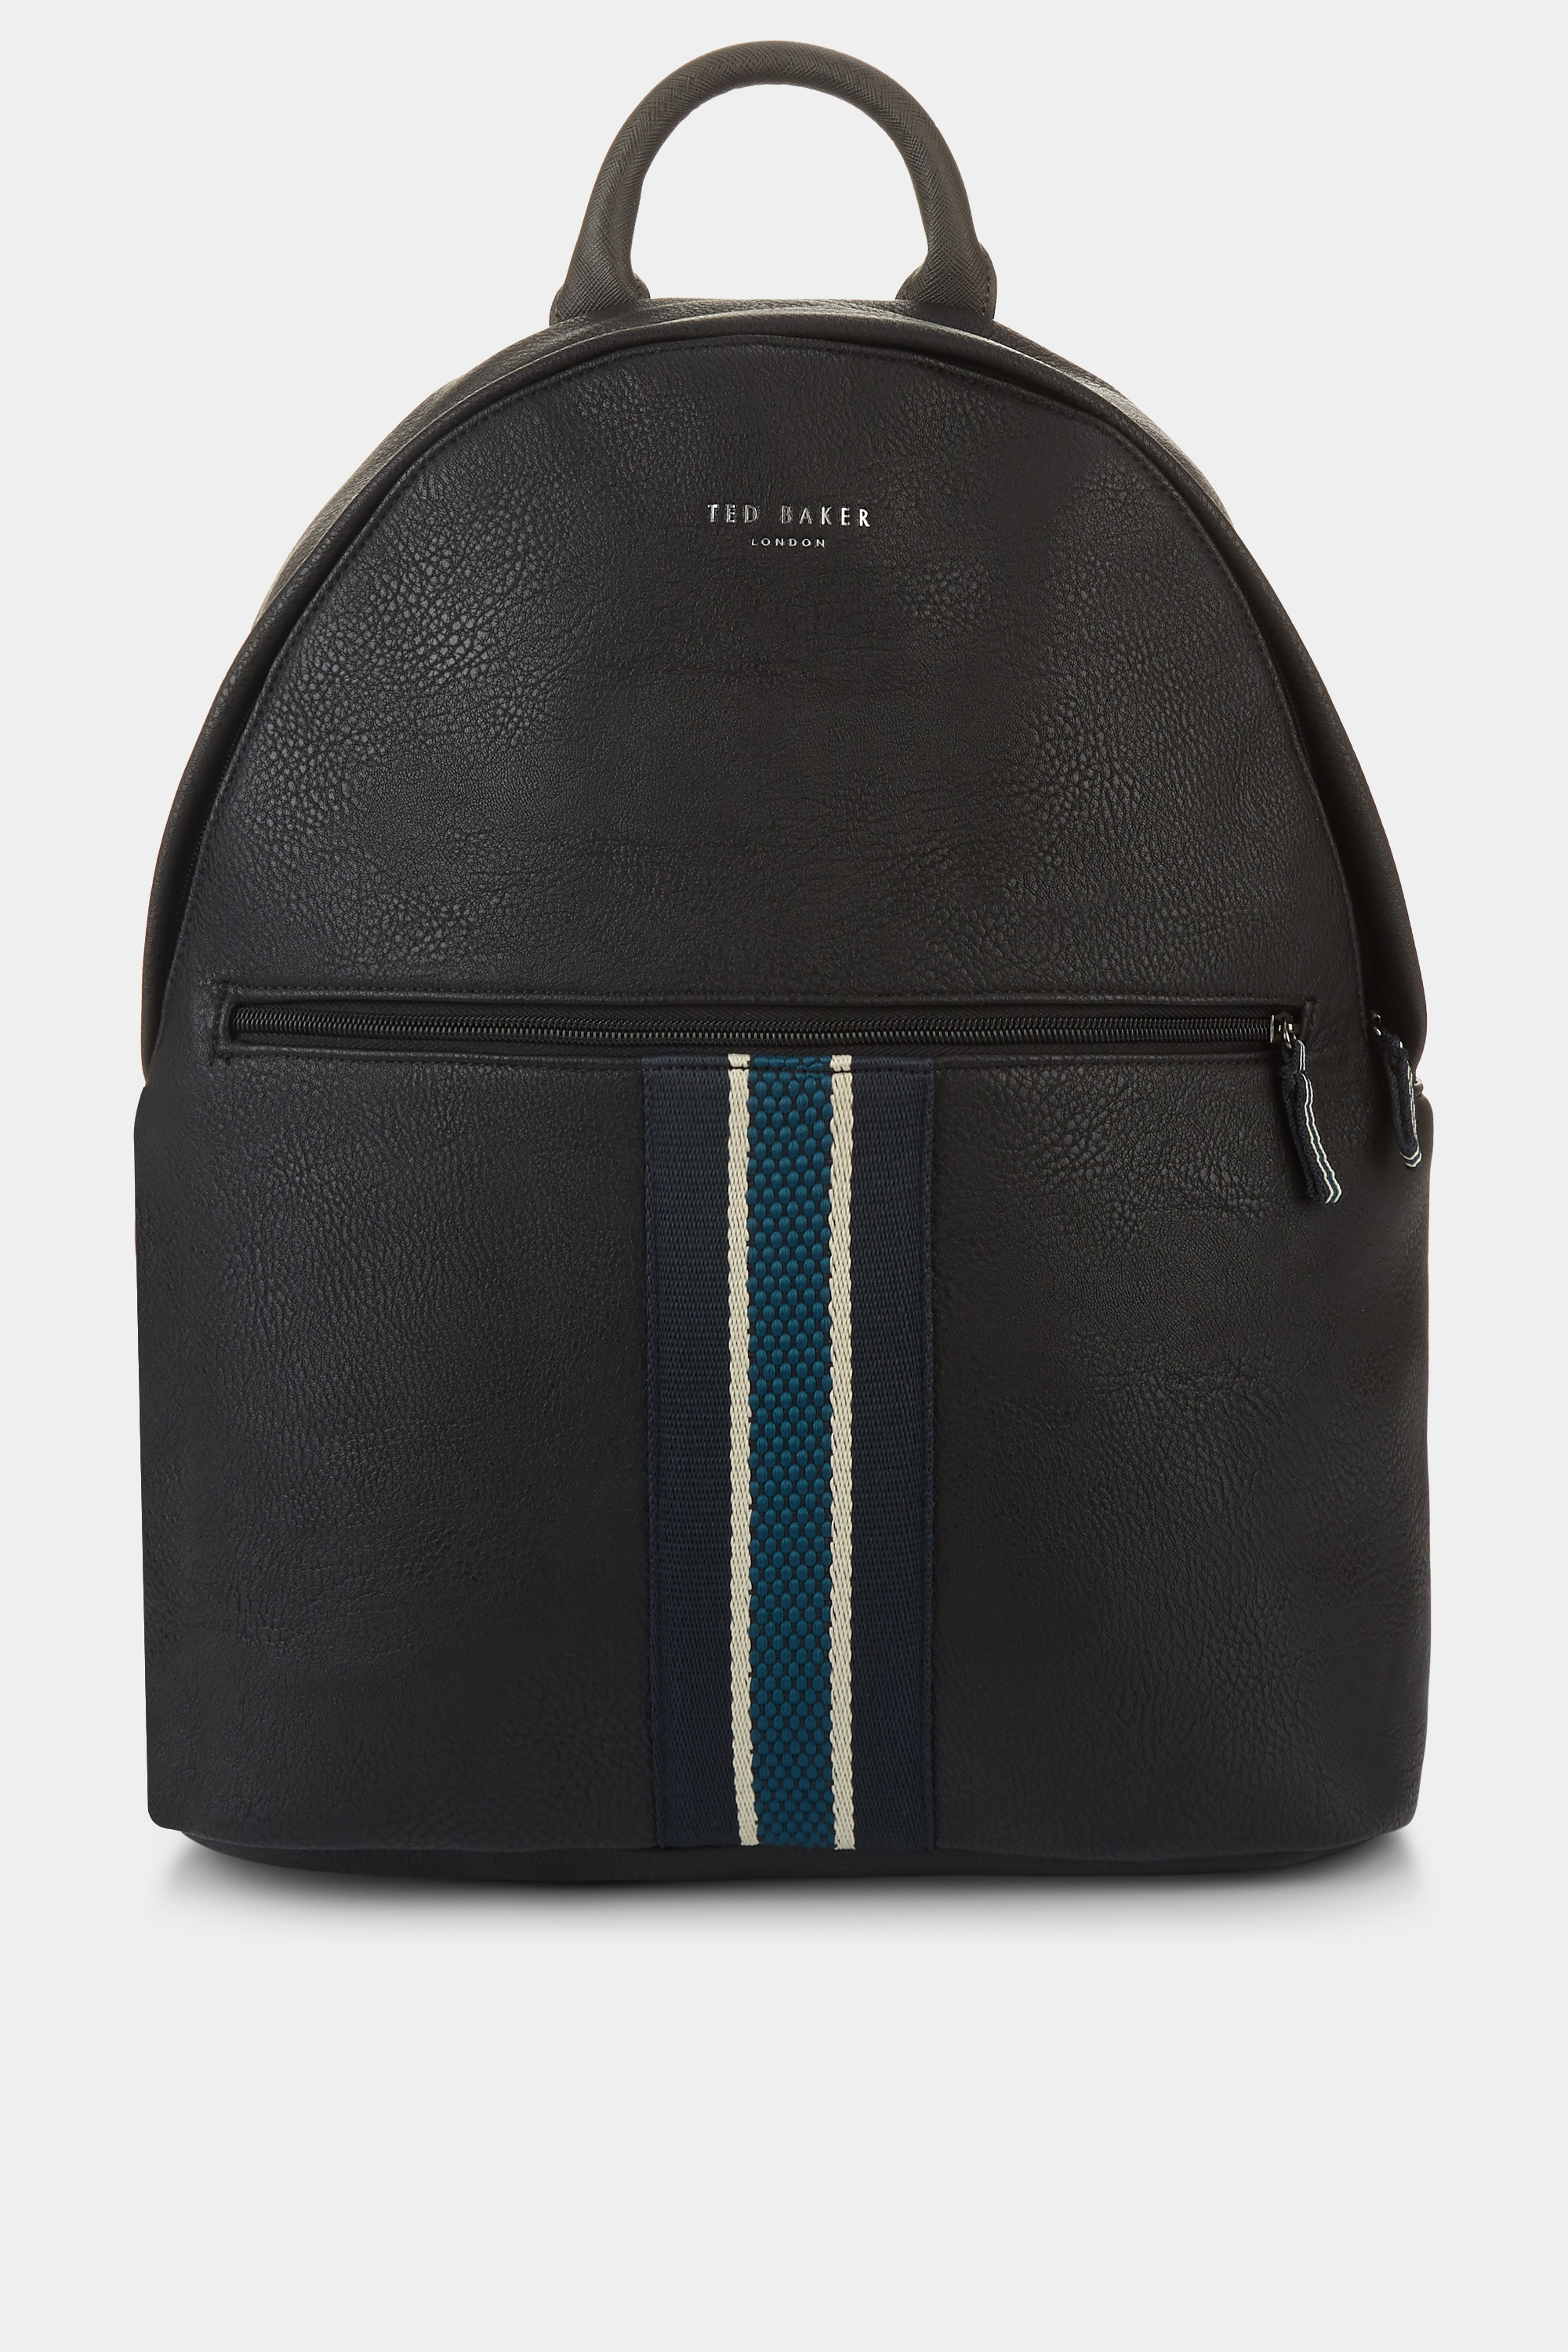 896f2e9cd Ted Baker Heriot Black Backpack